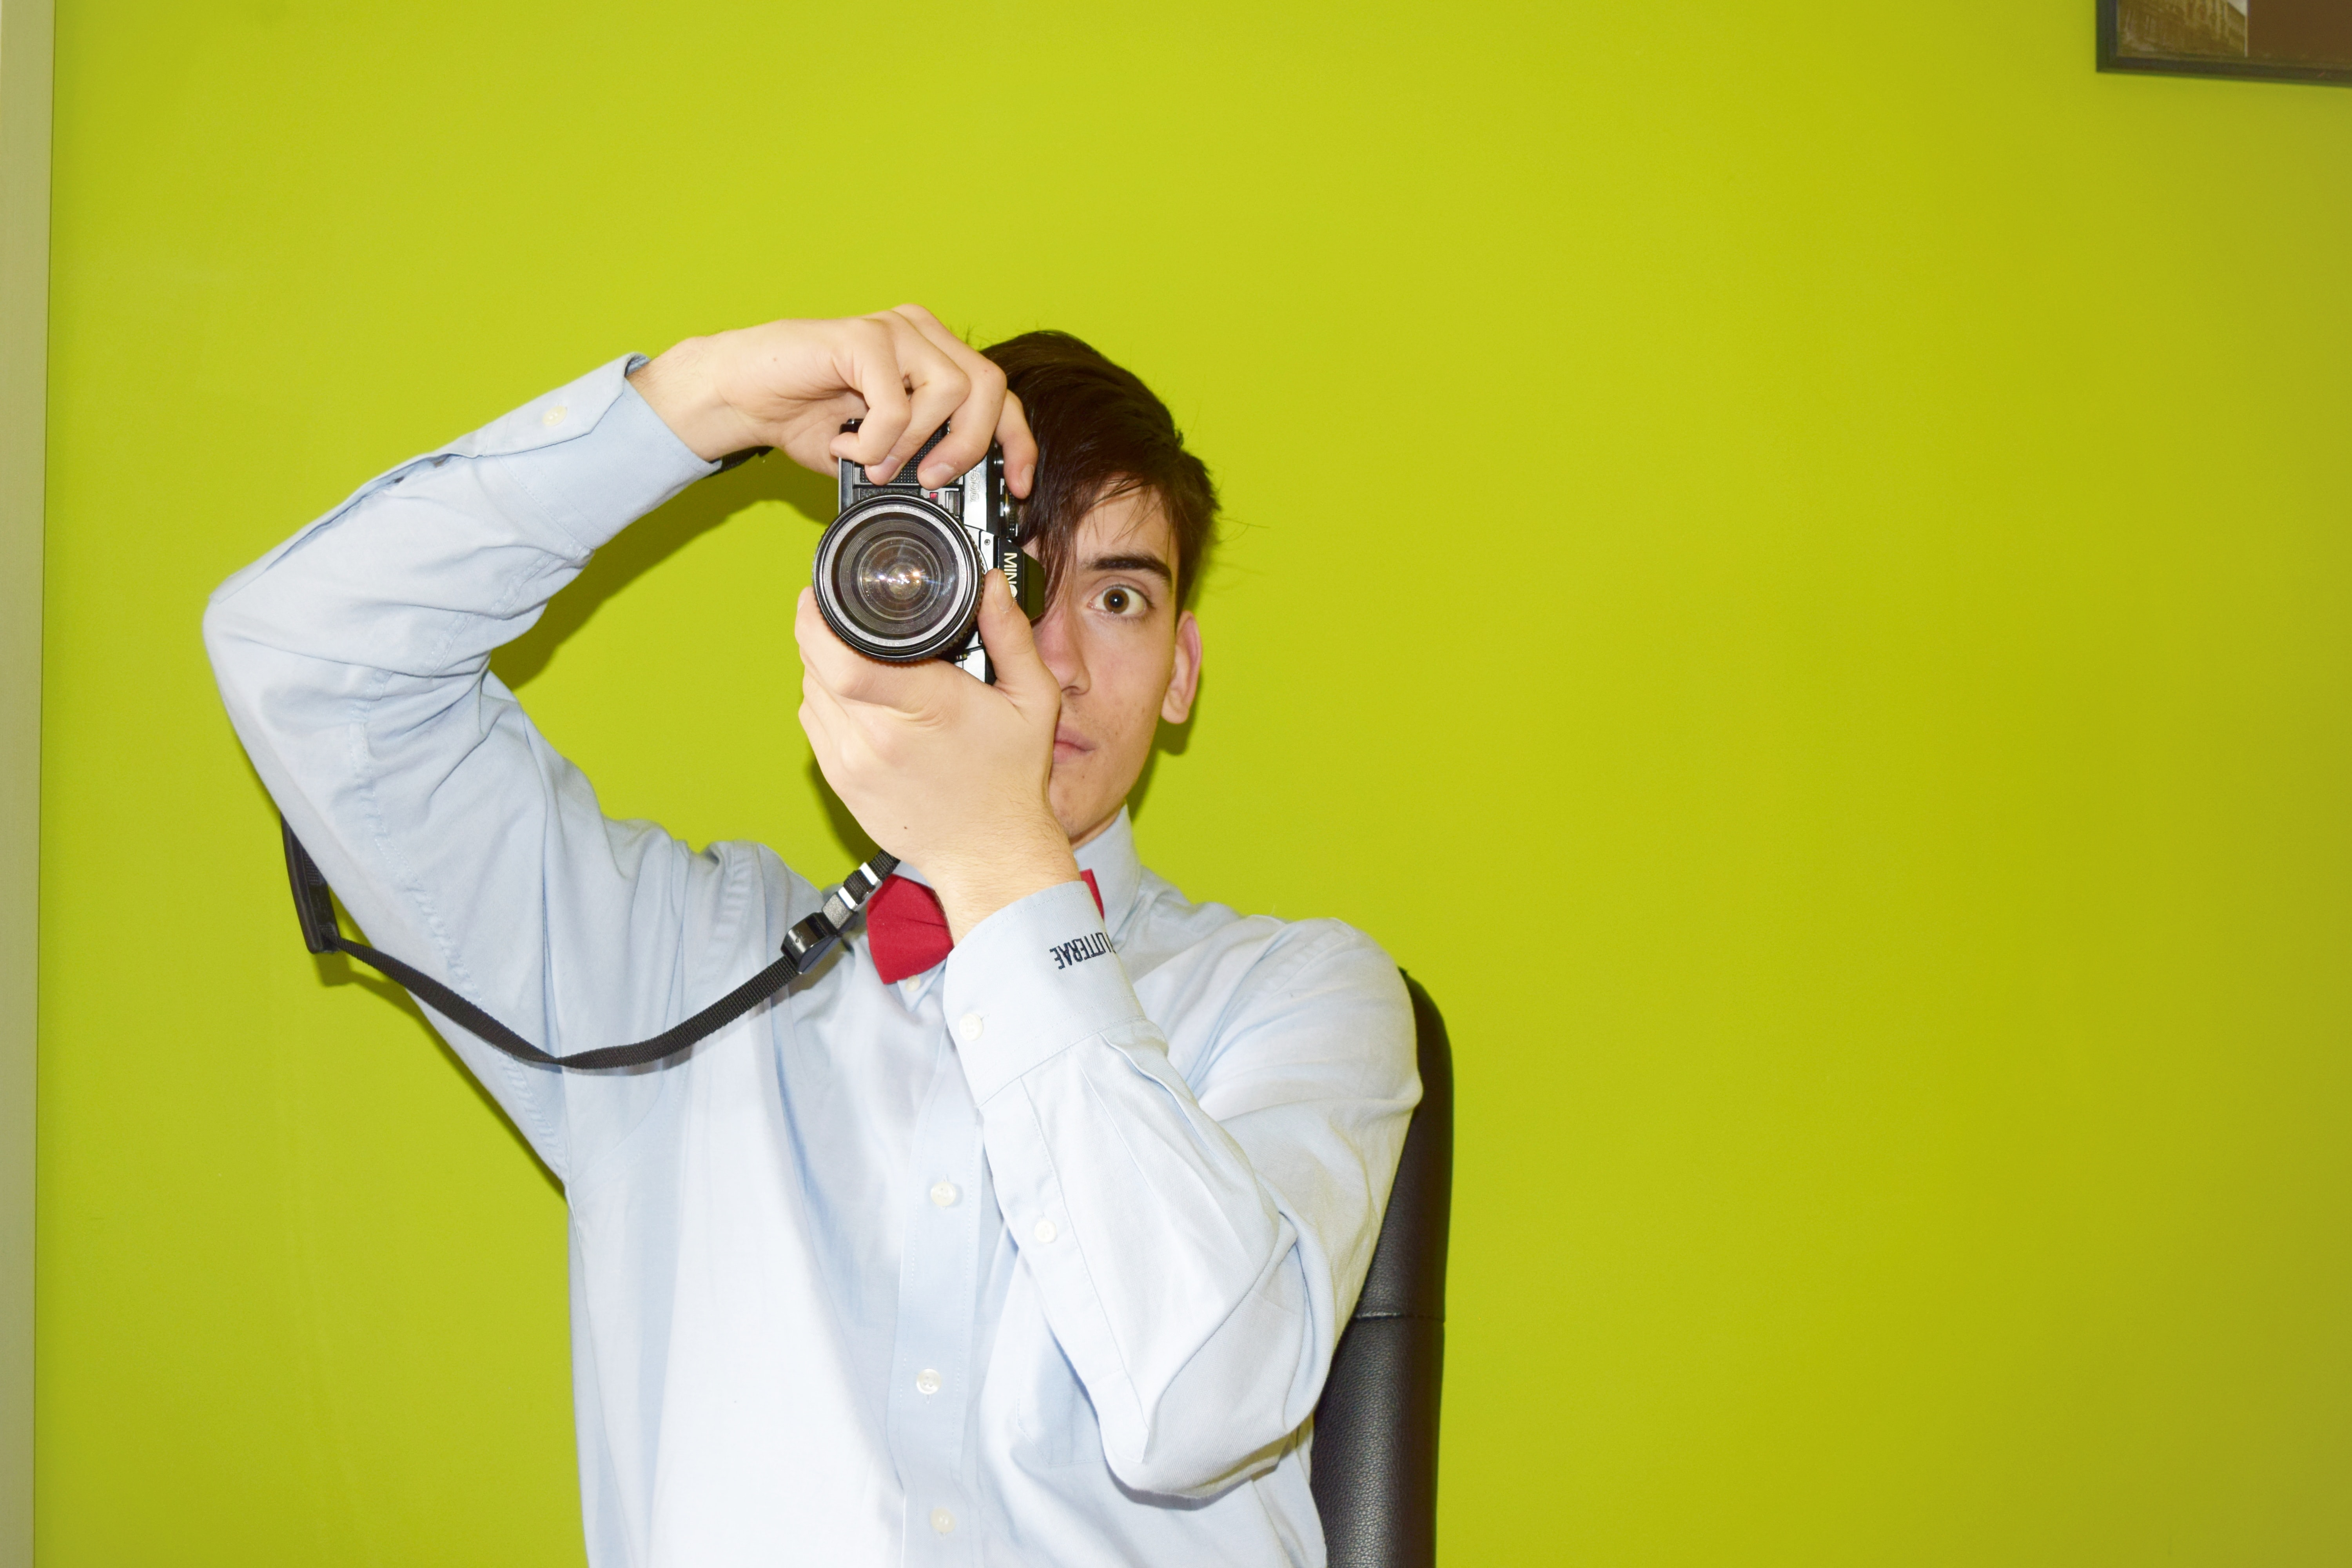 A person faces forward holding a camera against a bright green wall